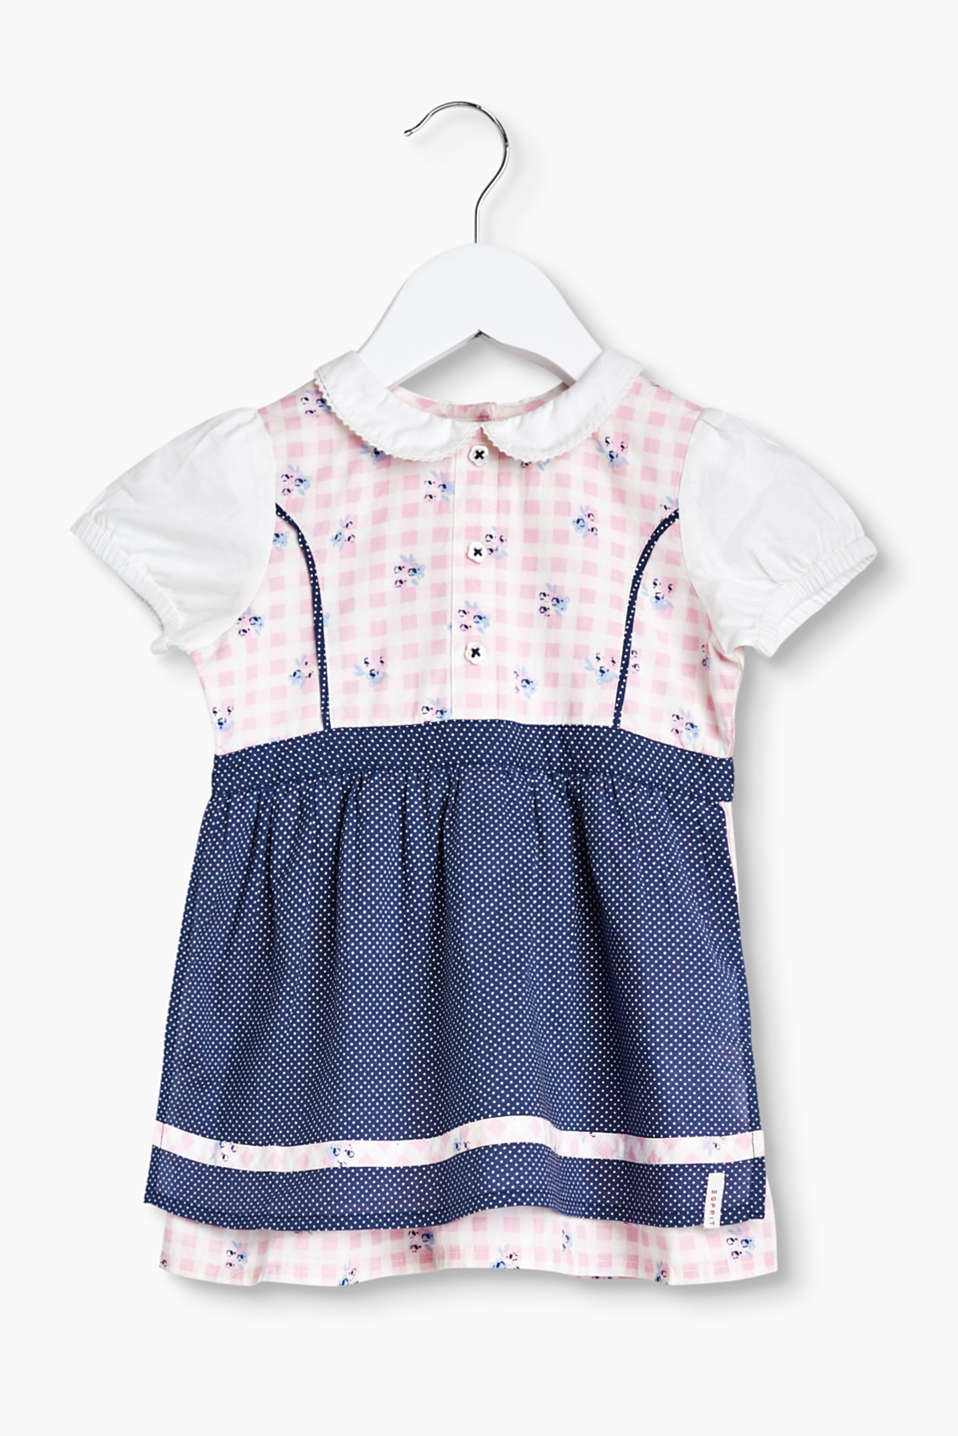 Dirndl with an attached, polka dot apron and a beautiful mixed pattern, 100% cotton